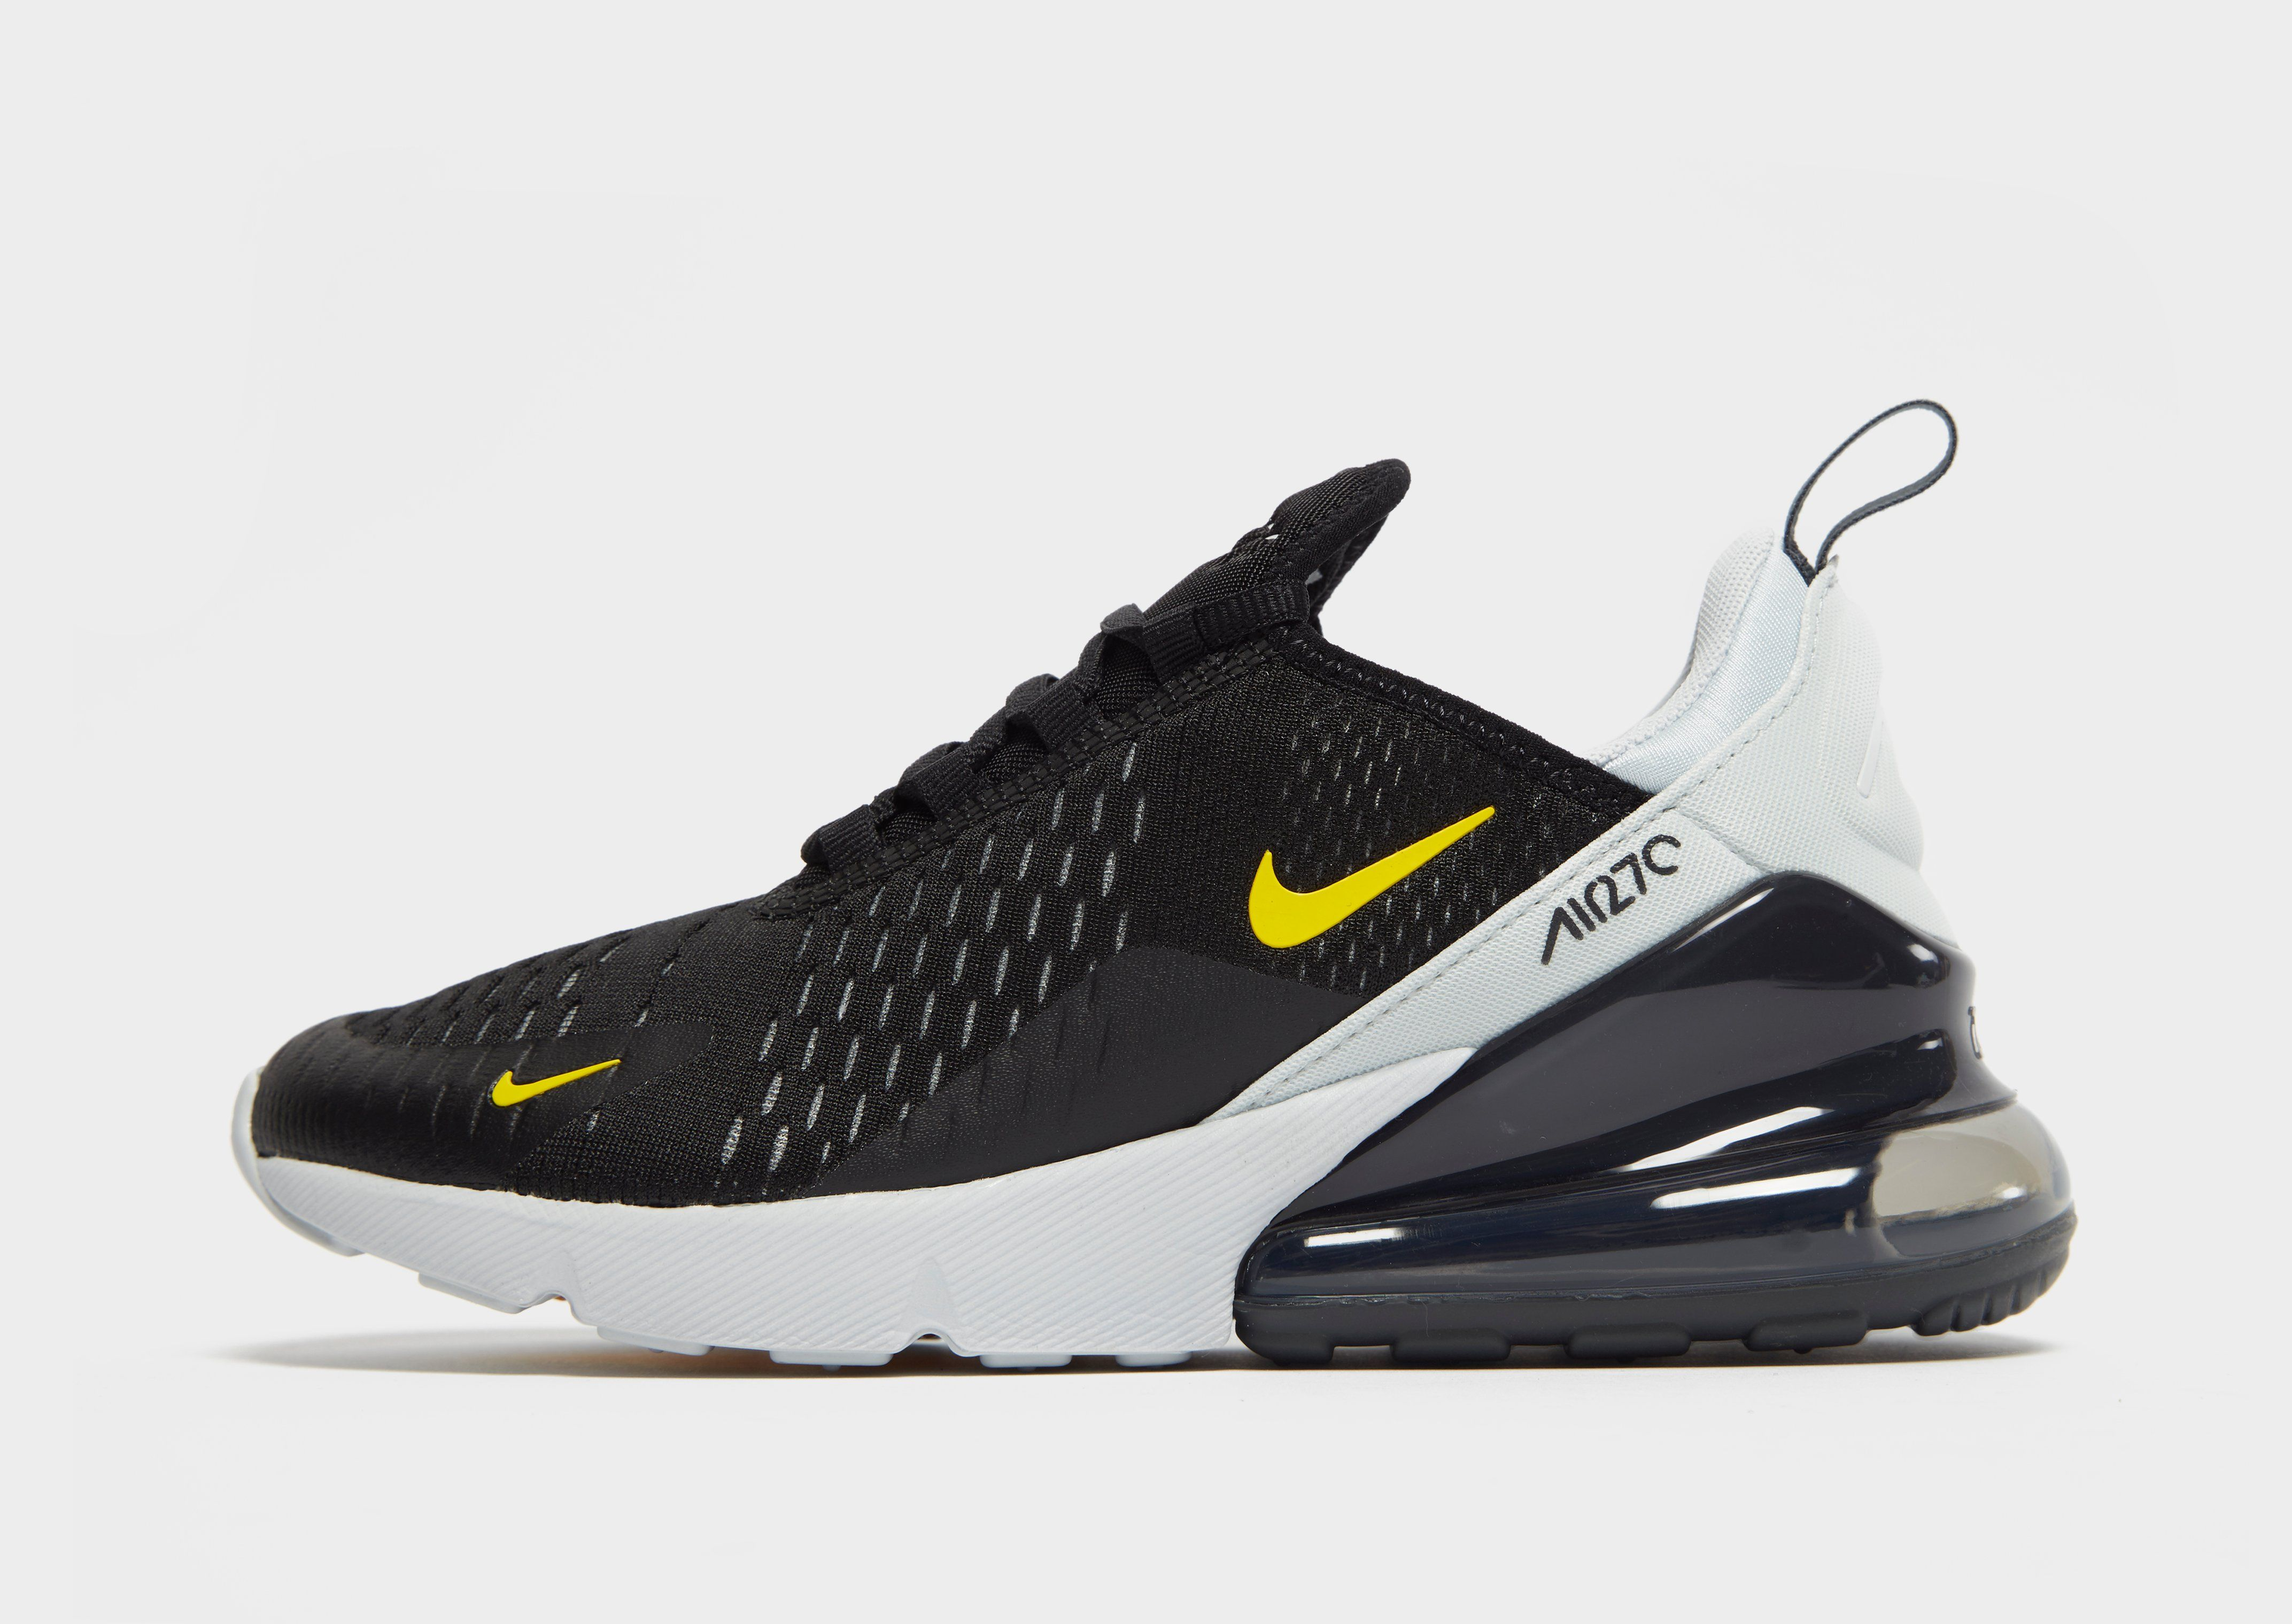 online retailer 9cea5 a3552 Nike Air Max 270 Older Kids' Shoe | JD Sports